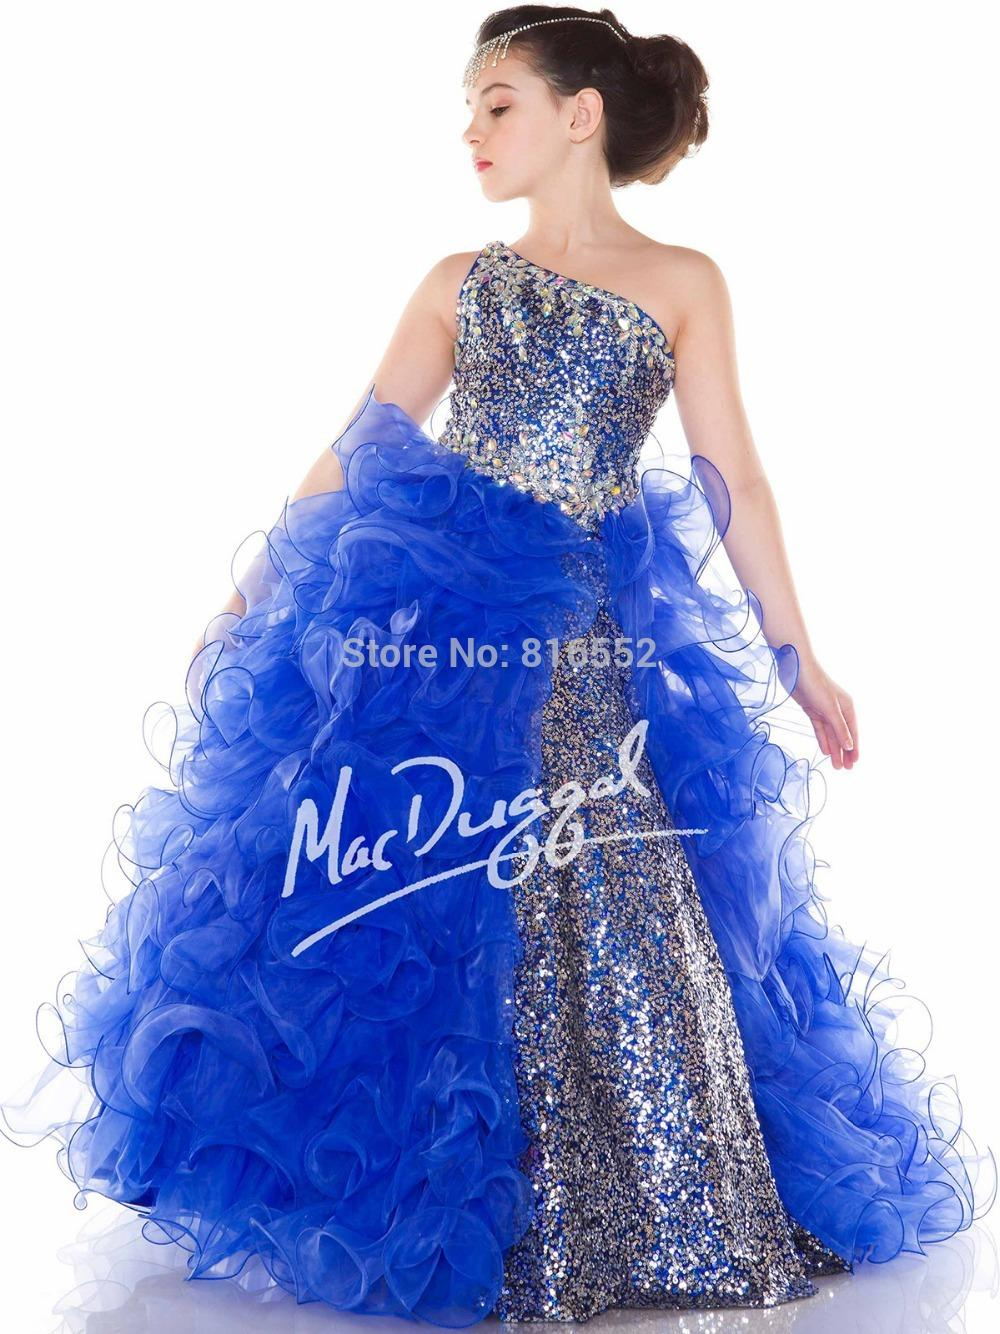 Buy 2015 New Hot Blue Flower Girl Dresses Ball Gowns Sequined ...